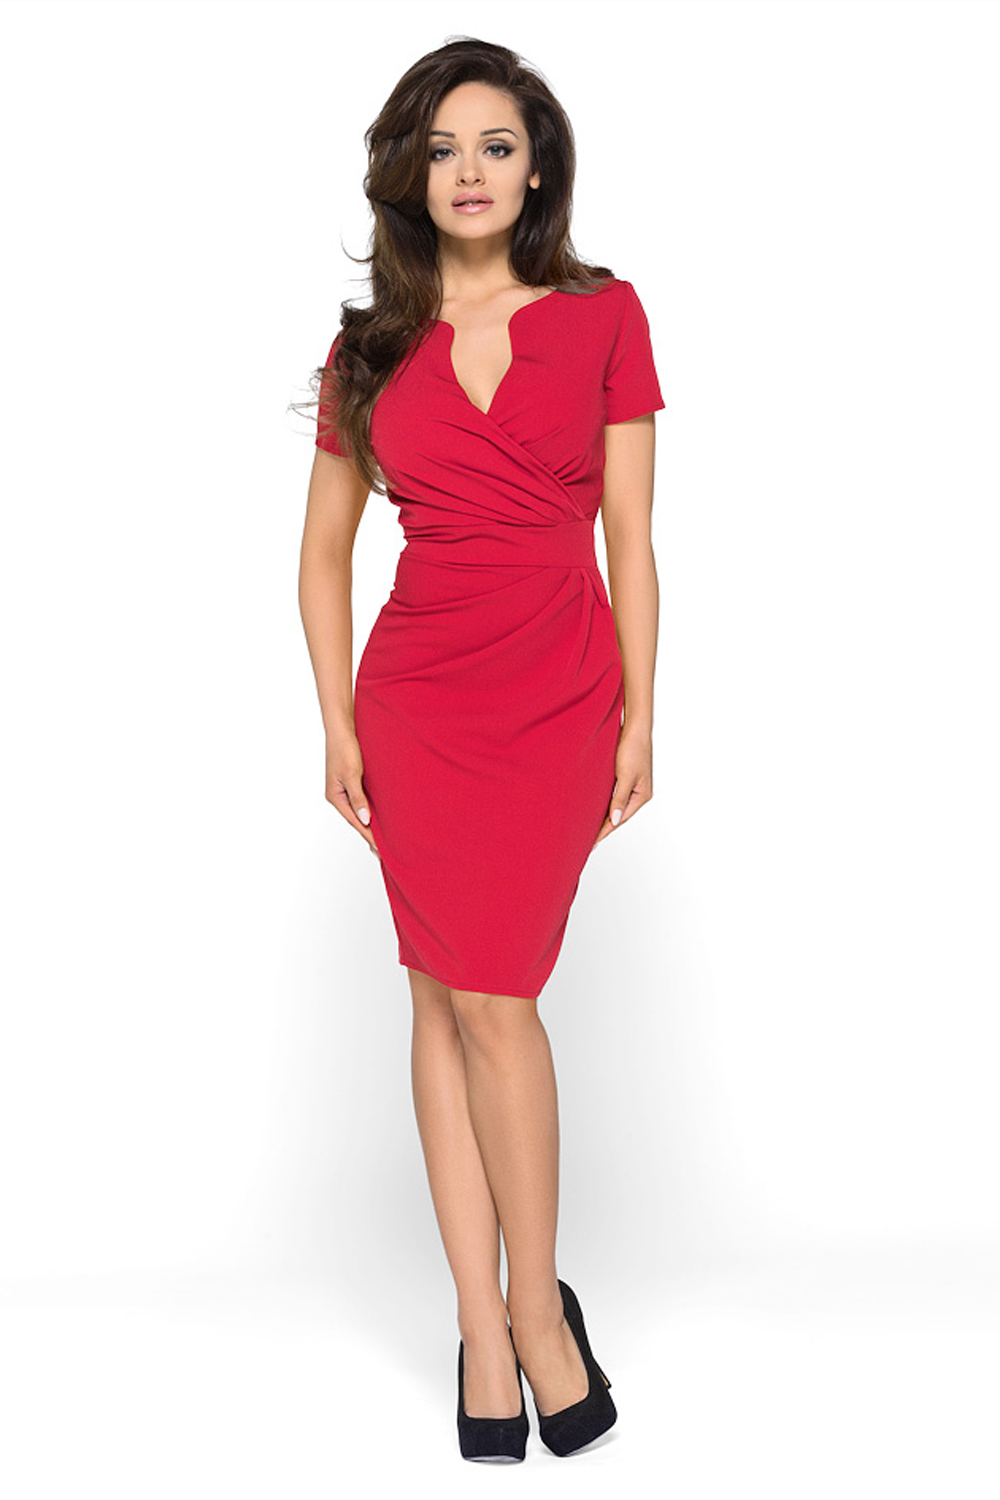 Home Dresses Wrap Around Self Belted Sheath Red Dress